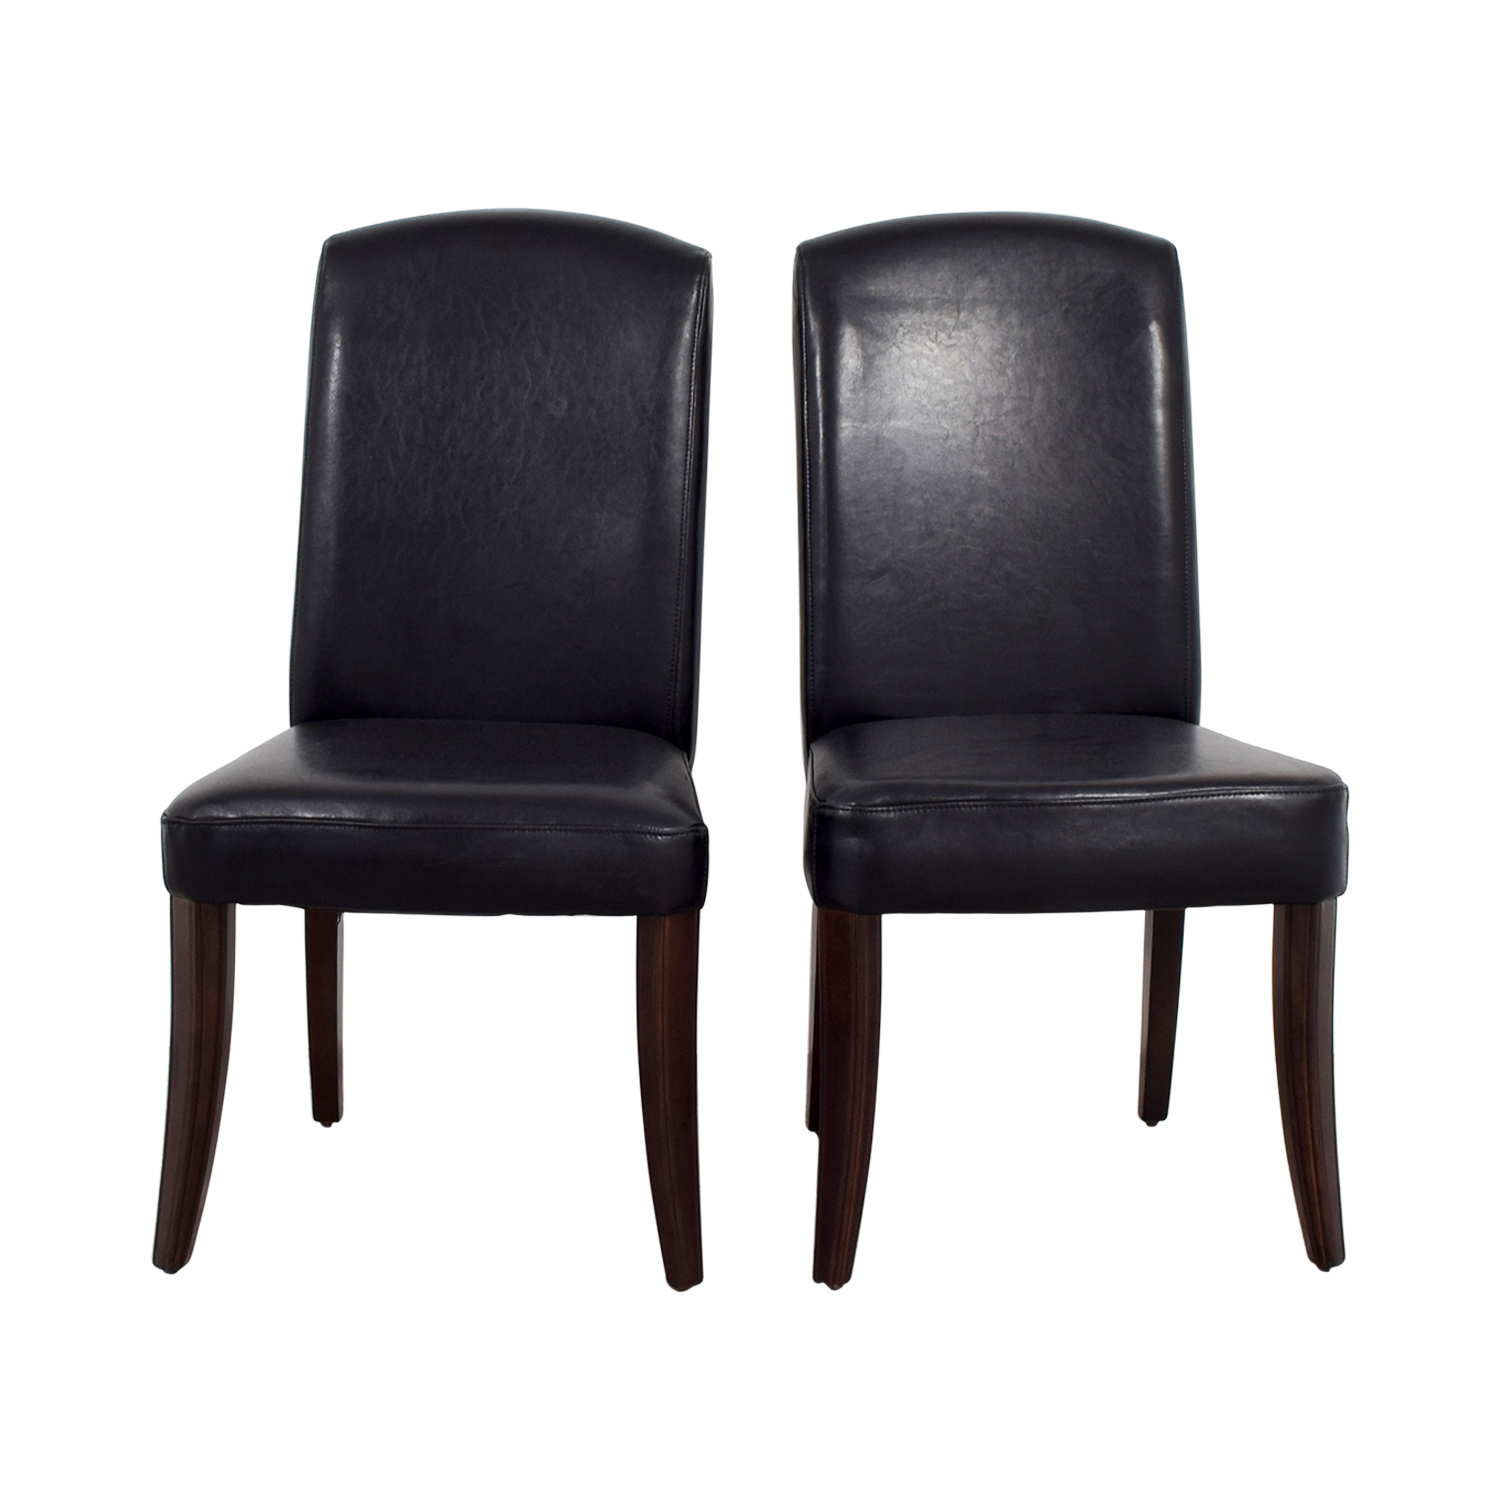 Black Padded Leatherette High Back Chairs nj